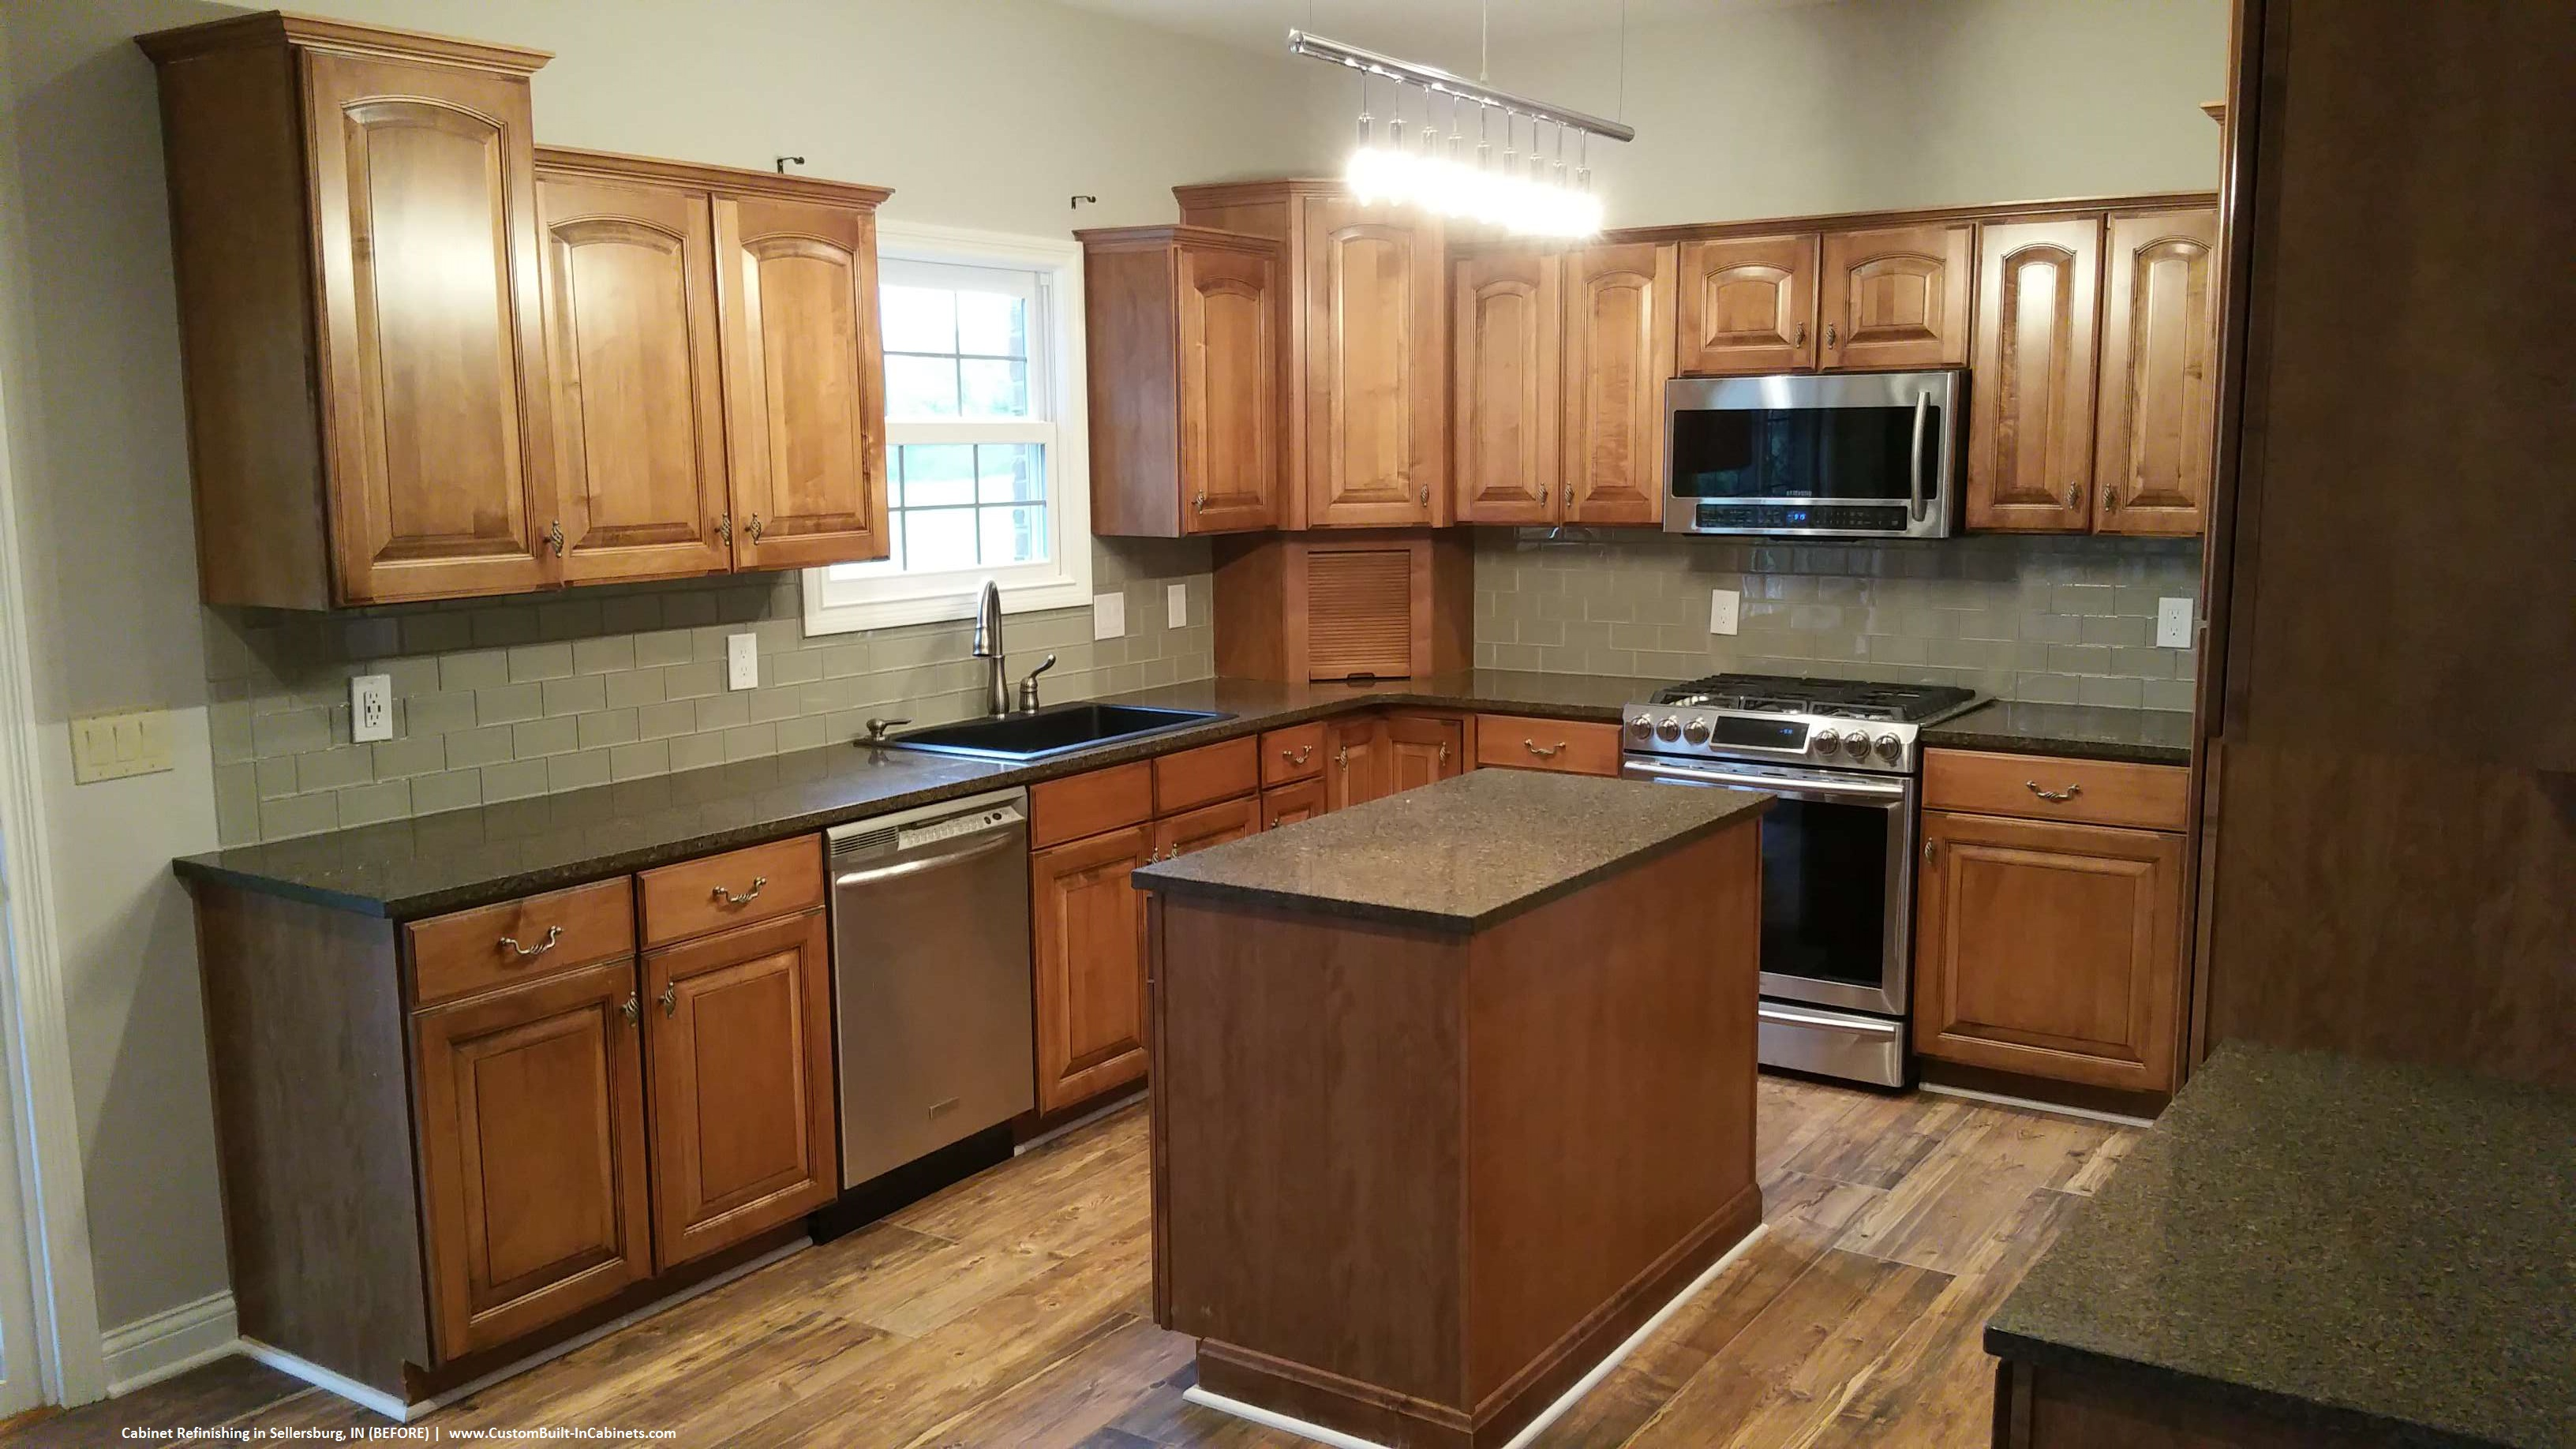 Cabinet refinishing louisville and southern indiana areas for Custom built cabinets